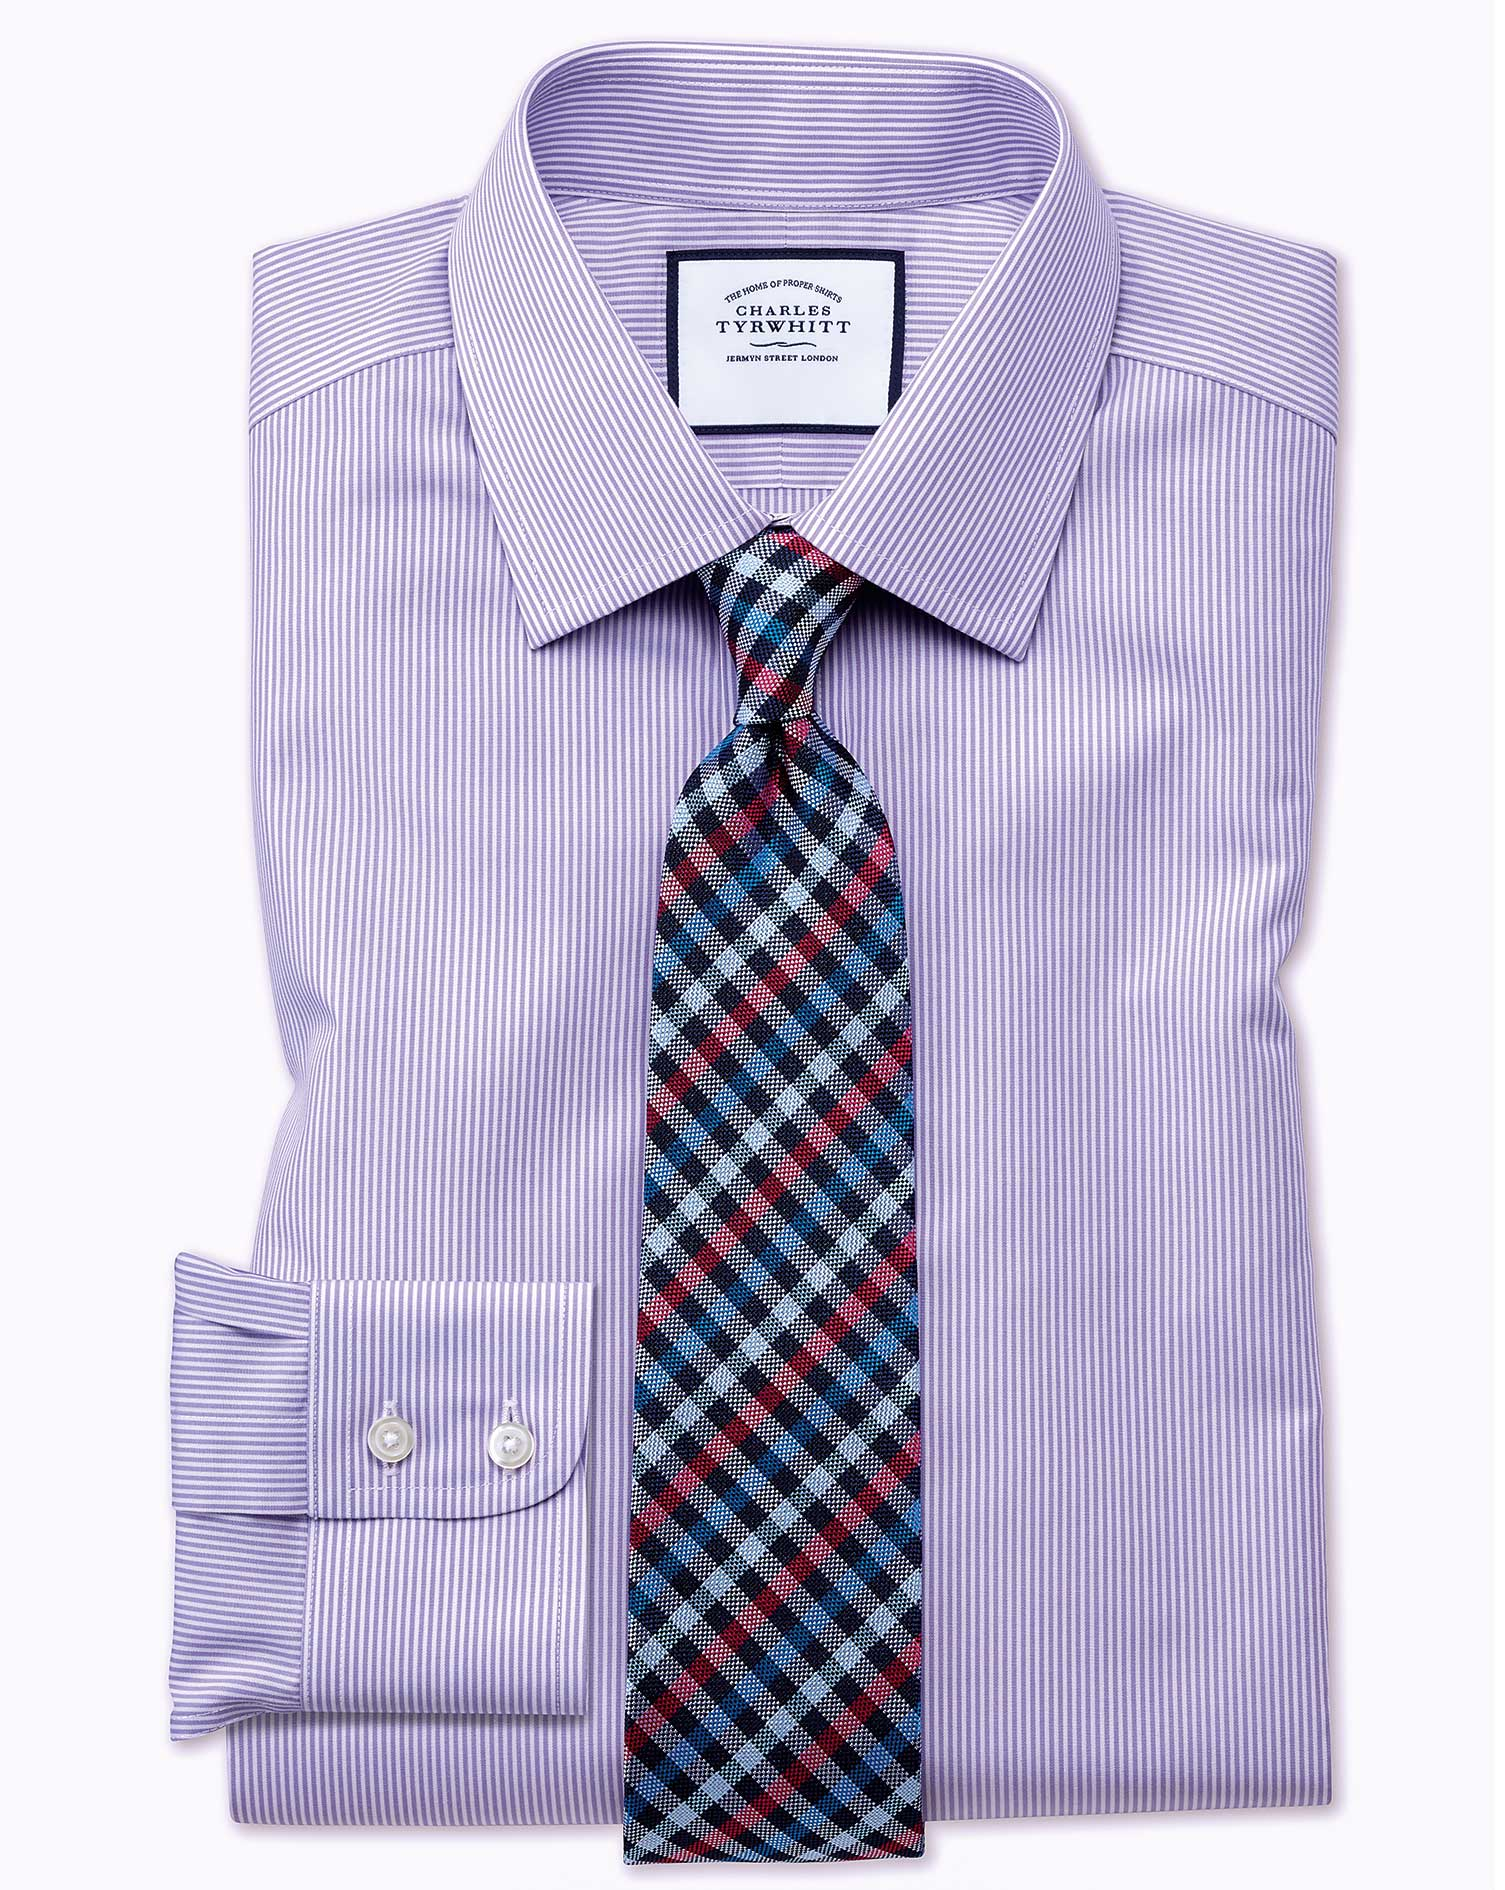 Classic Fit Non-Iron Bengal Stripe Lilac Cotton Formal Shirt Double Cuff Size 16.5/33 by Charles Tyr